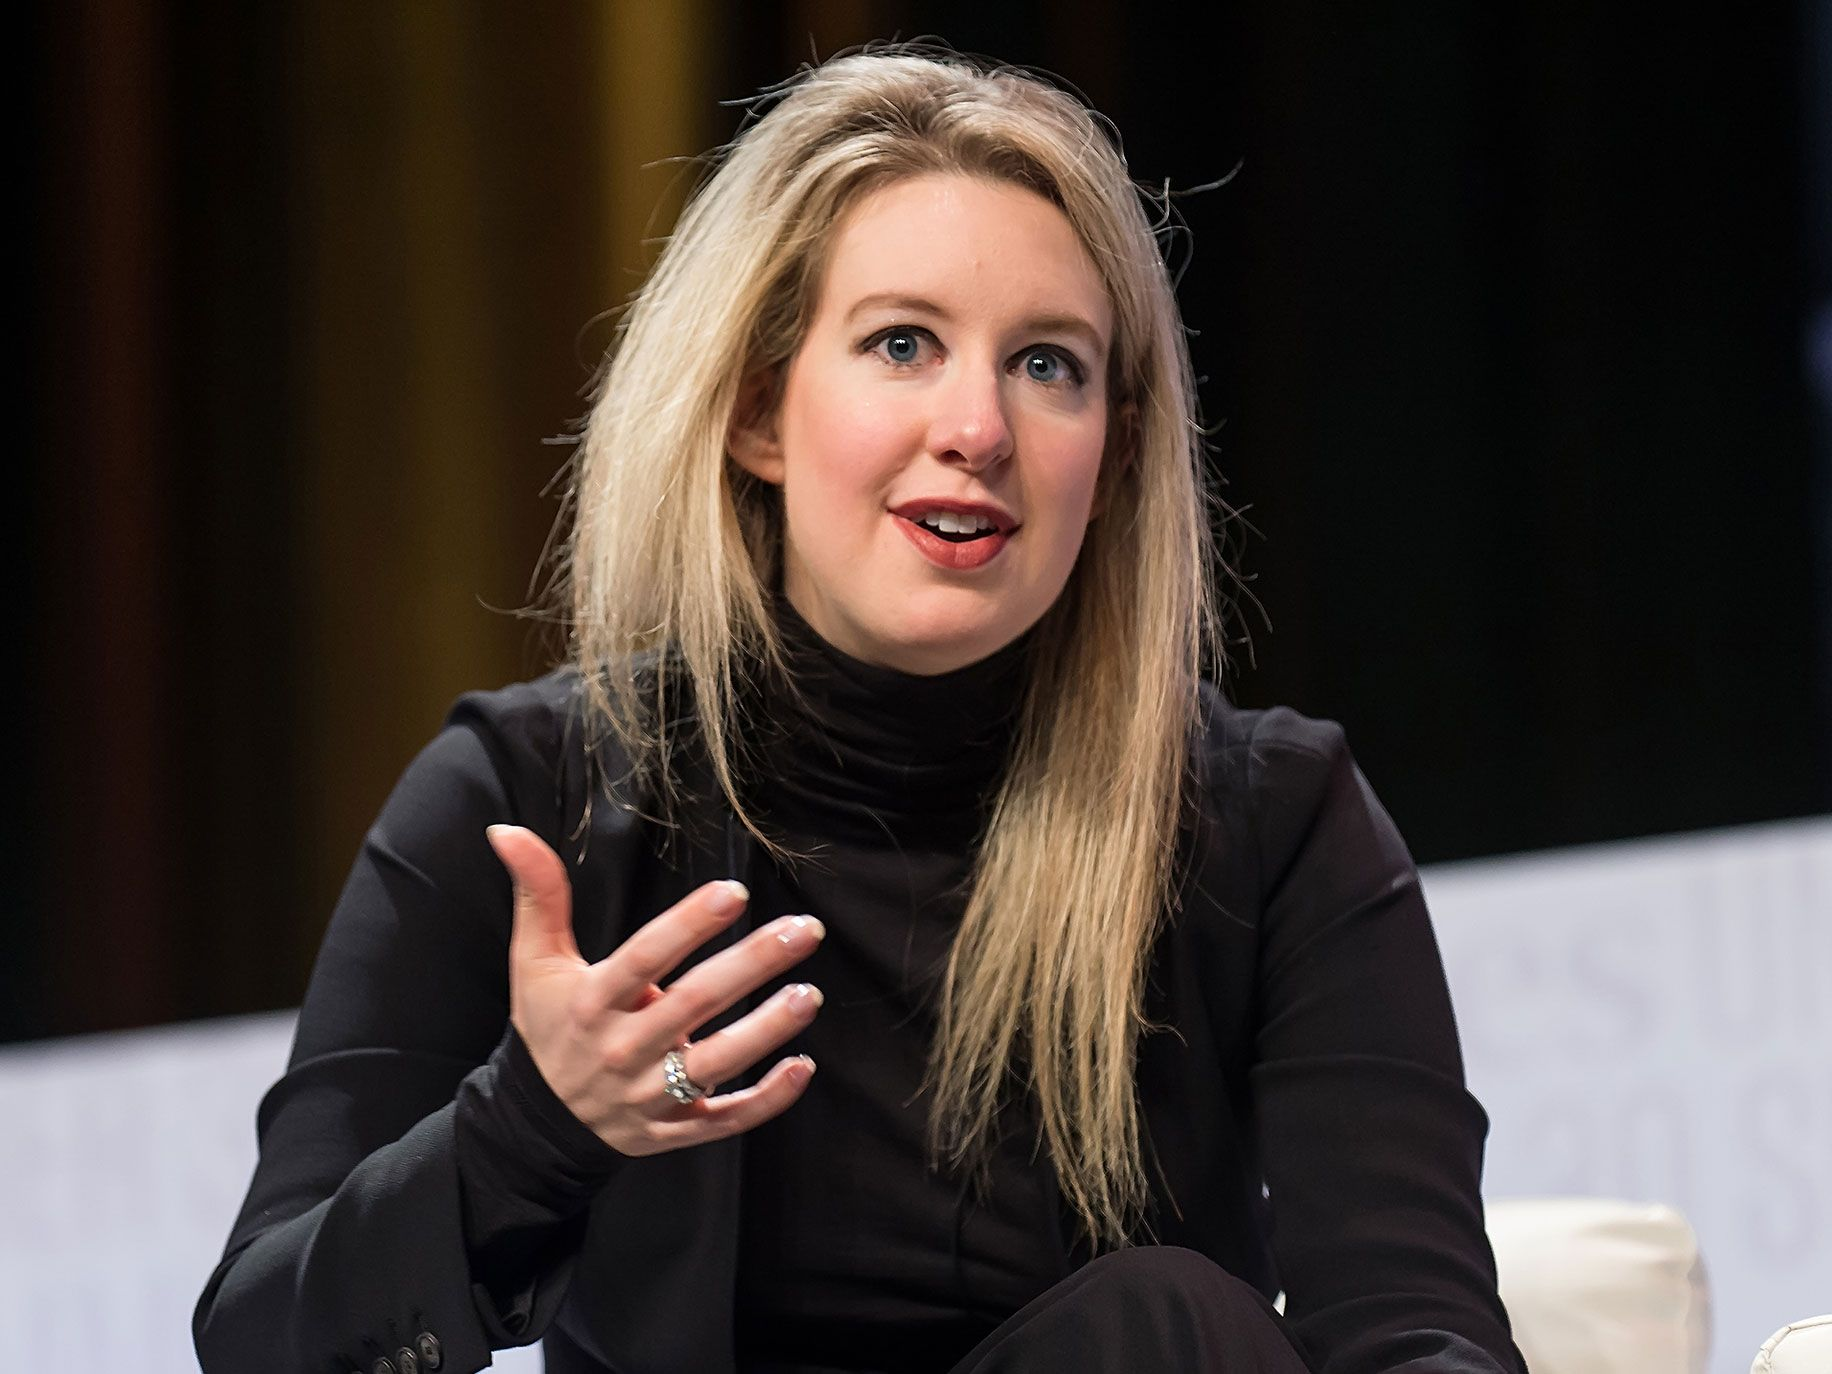 Founder and CEO of Theranos Elizabeth Holmes